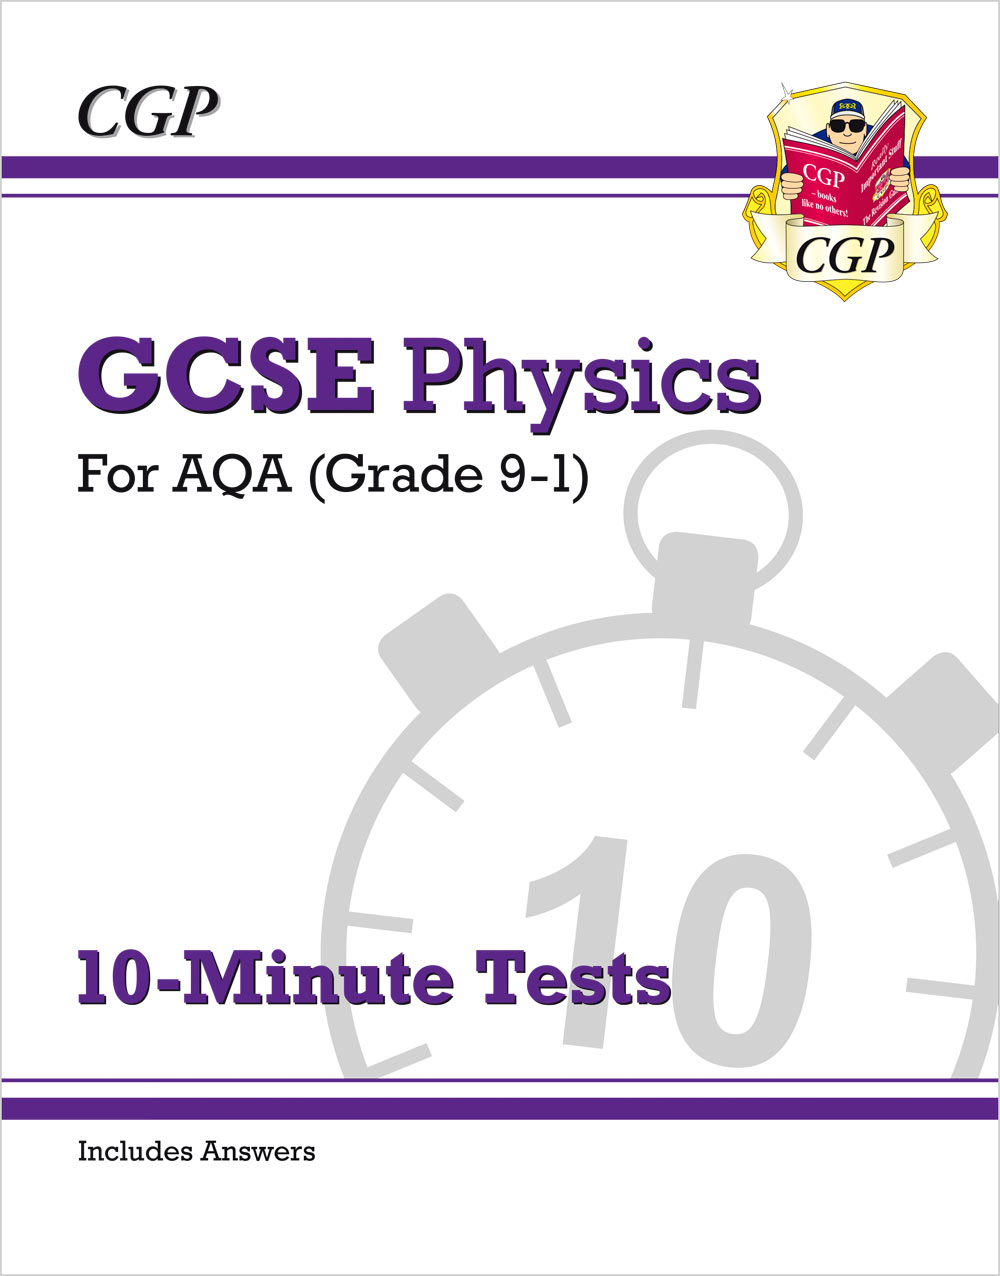 PAXP42 - Grade 9-1 GCSE Physics: AQA 10-Minute Tests (with answers)